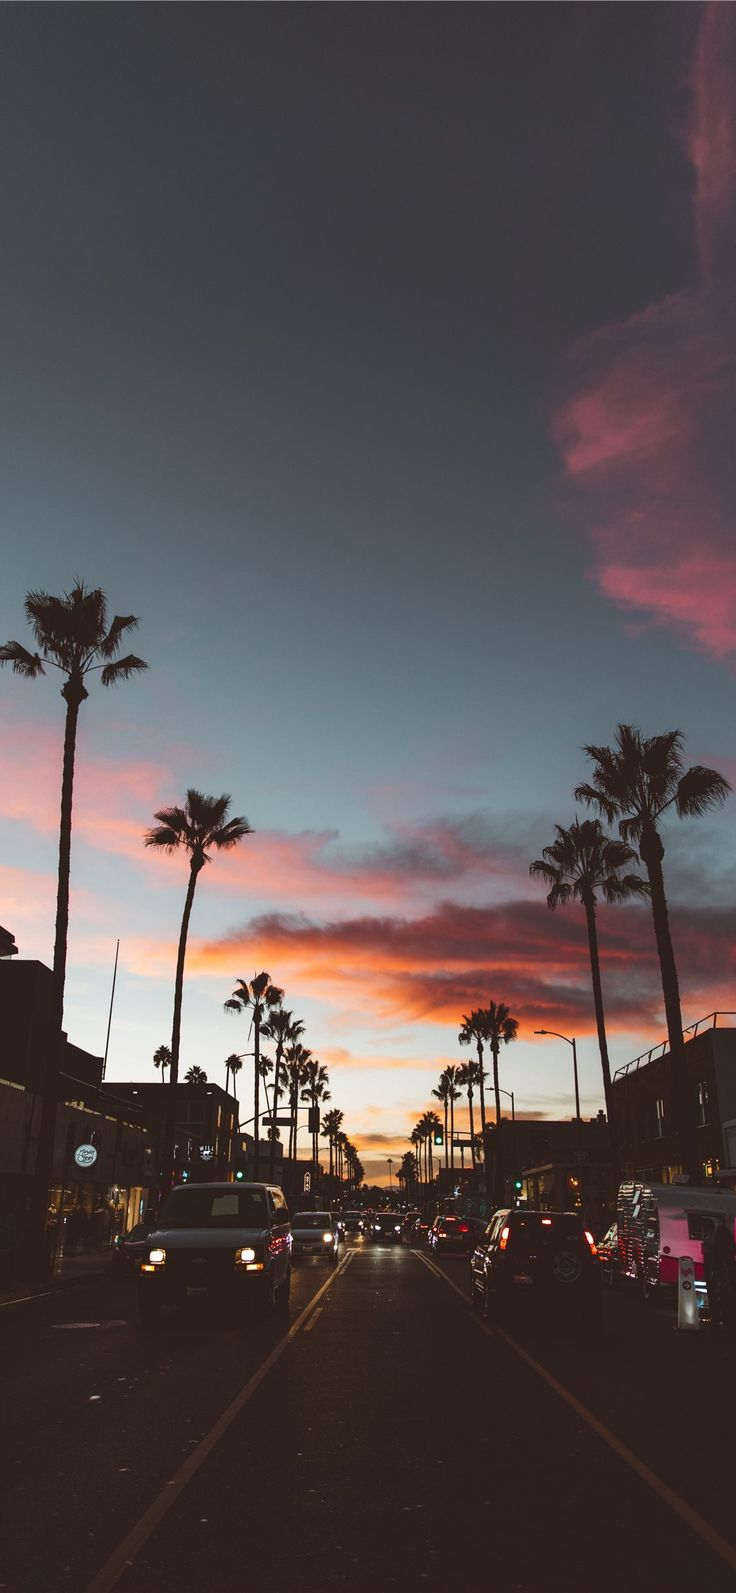 Free download the Abbot Kinney wallpaper ,beaty your phone . #la #Urban #los ang…